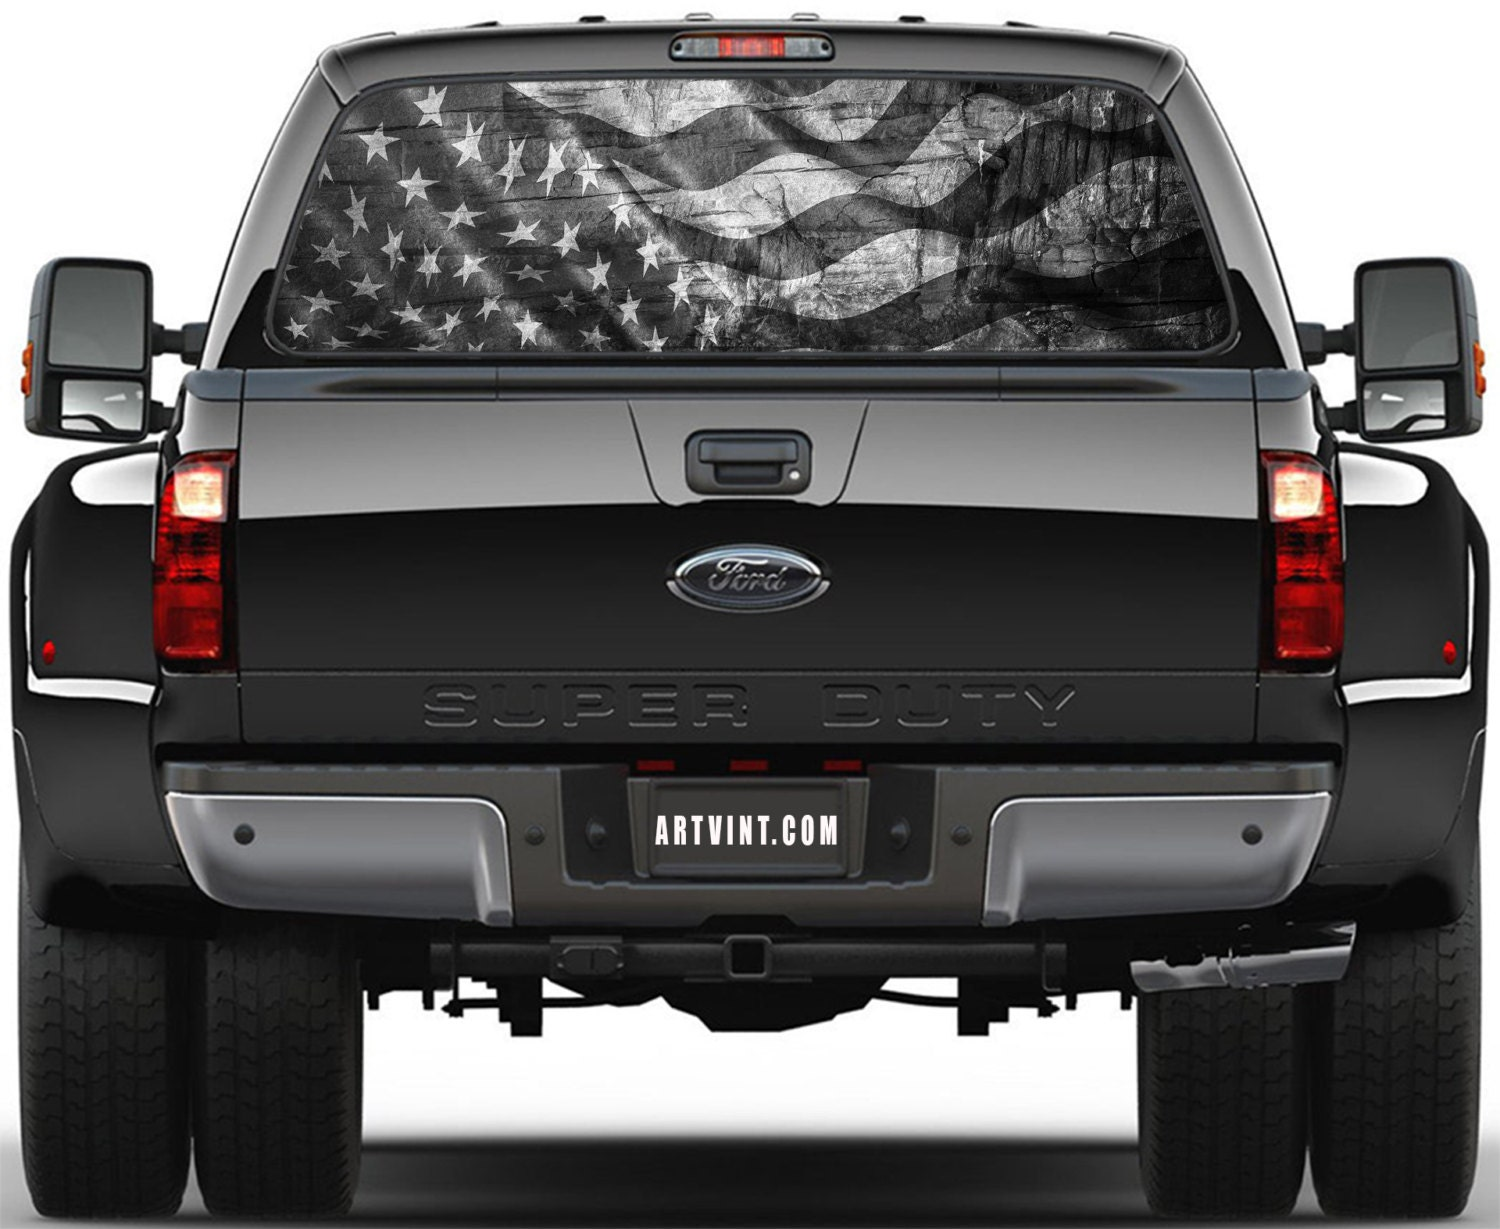 American Flag Prairie Gold Stone Black And White Rear Window - Chevy window decals for trucks